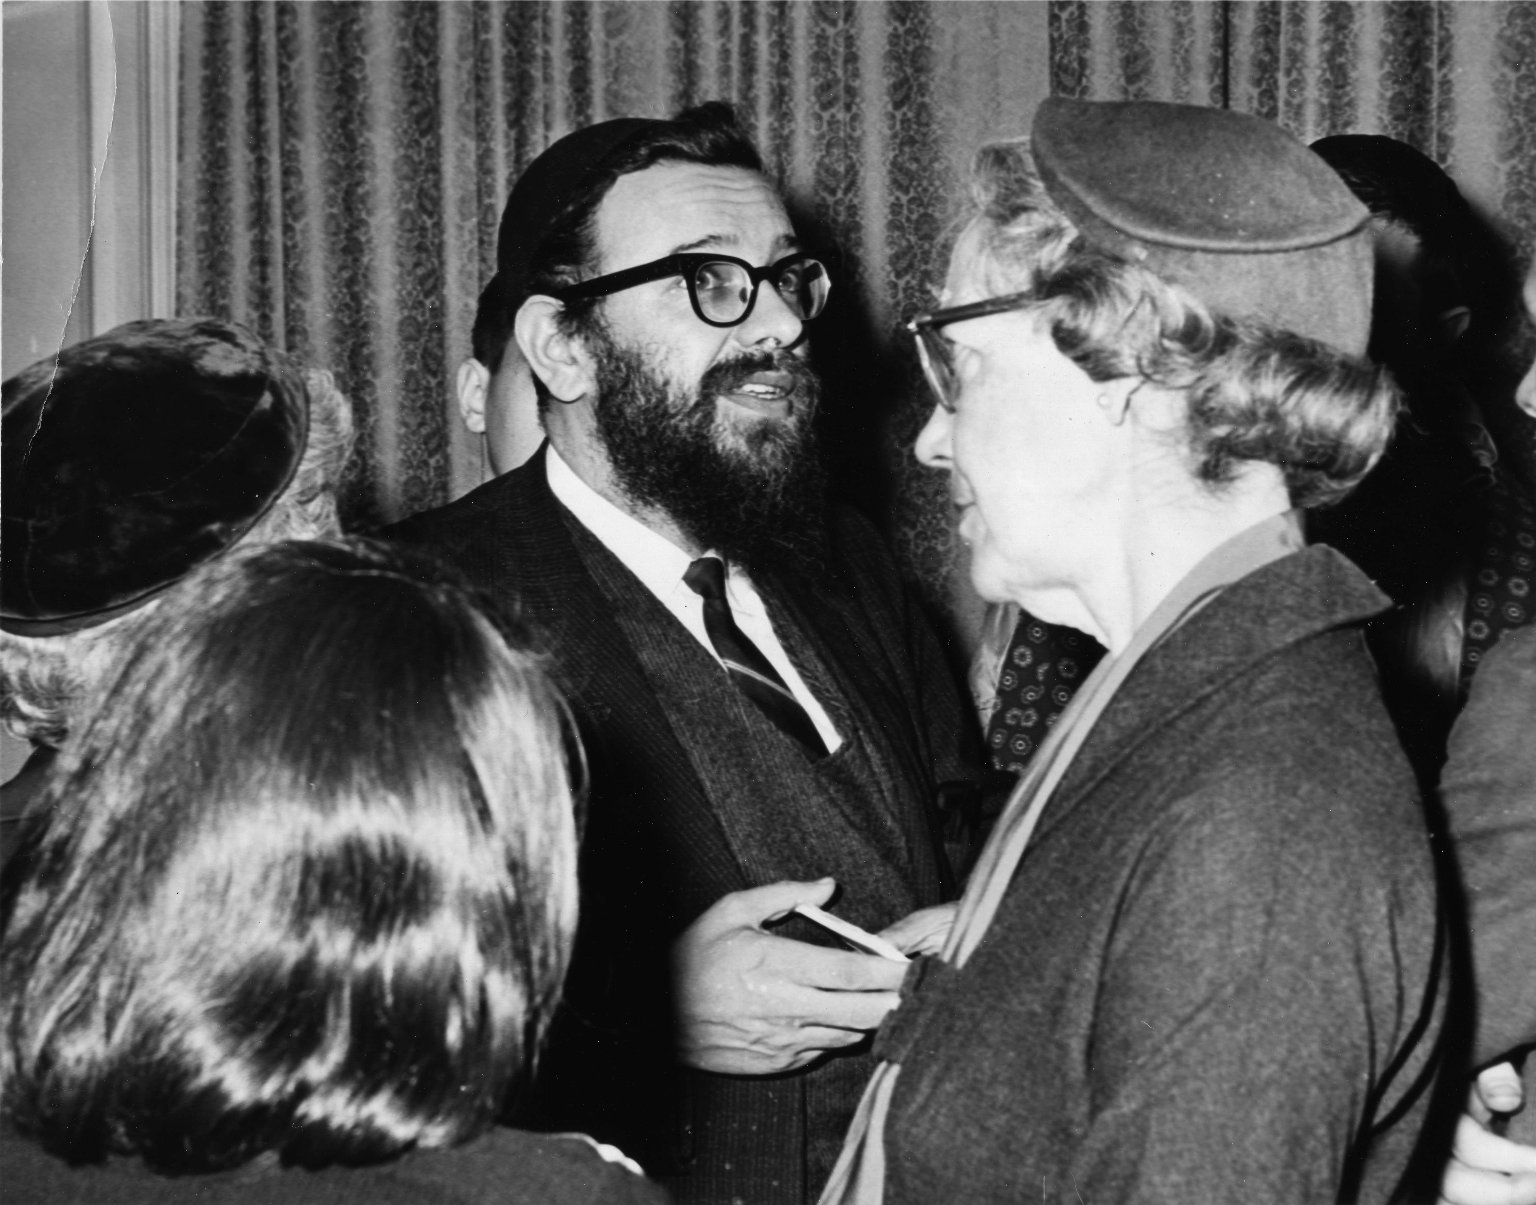 Rabbi Zalman Schachter speaking to people after a Hillel Foundation talk in Pittsburg, Pennsylvania in 1962 or 63.